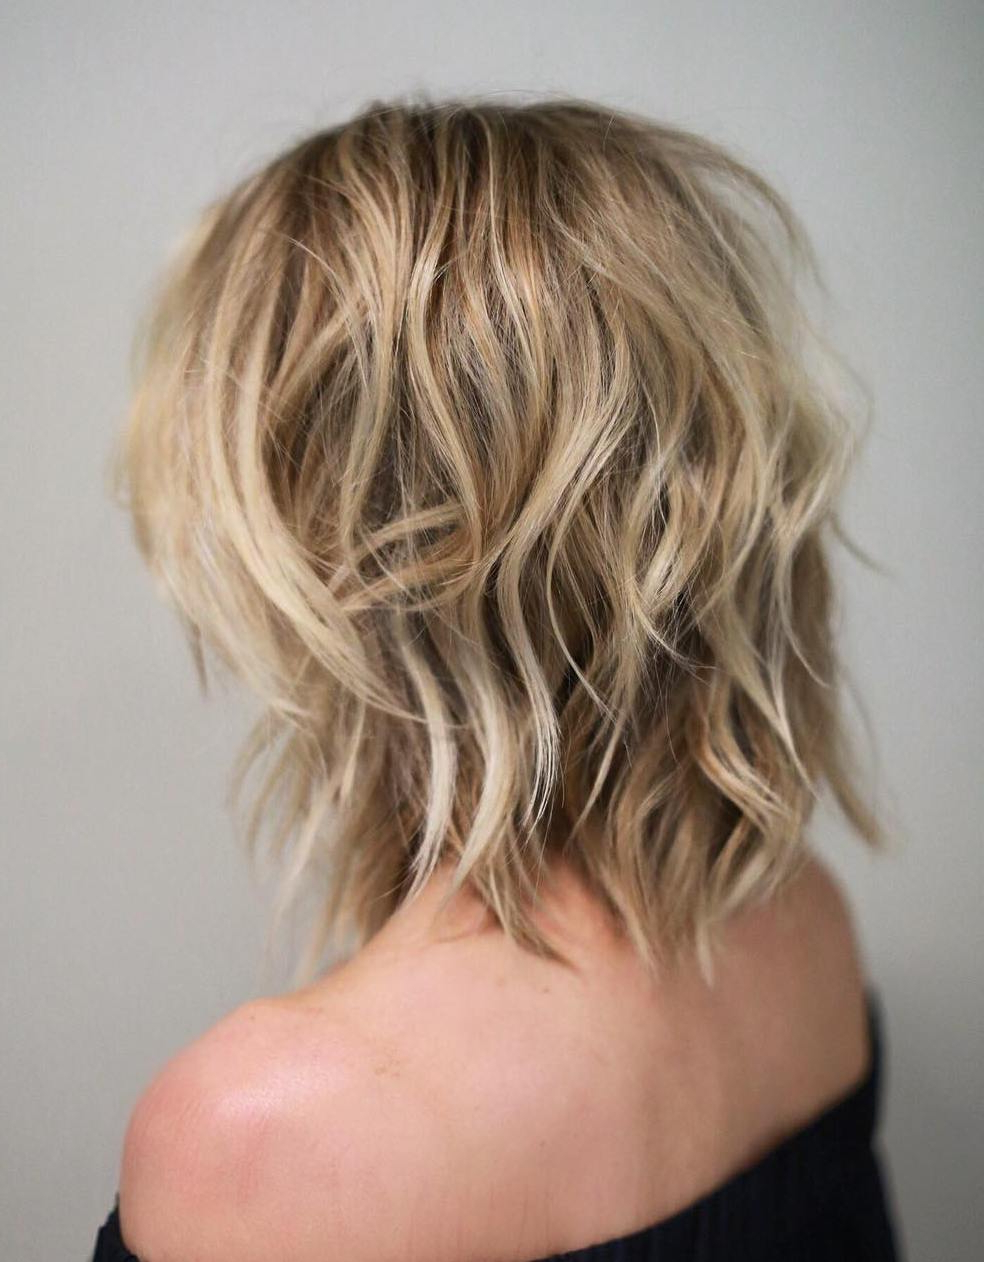 21 Fabulous Short Shaggy Haircuts For Women – Haircuts Throughout Most Recent Medium Shag Haircuts With Crown Layers (View 5 of 20)